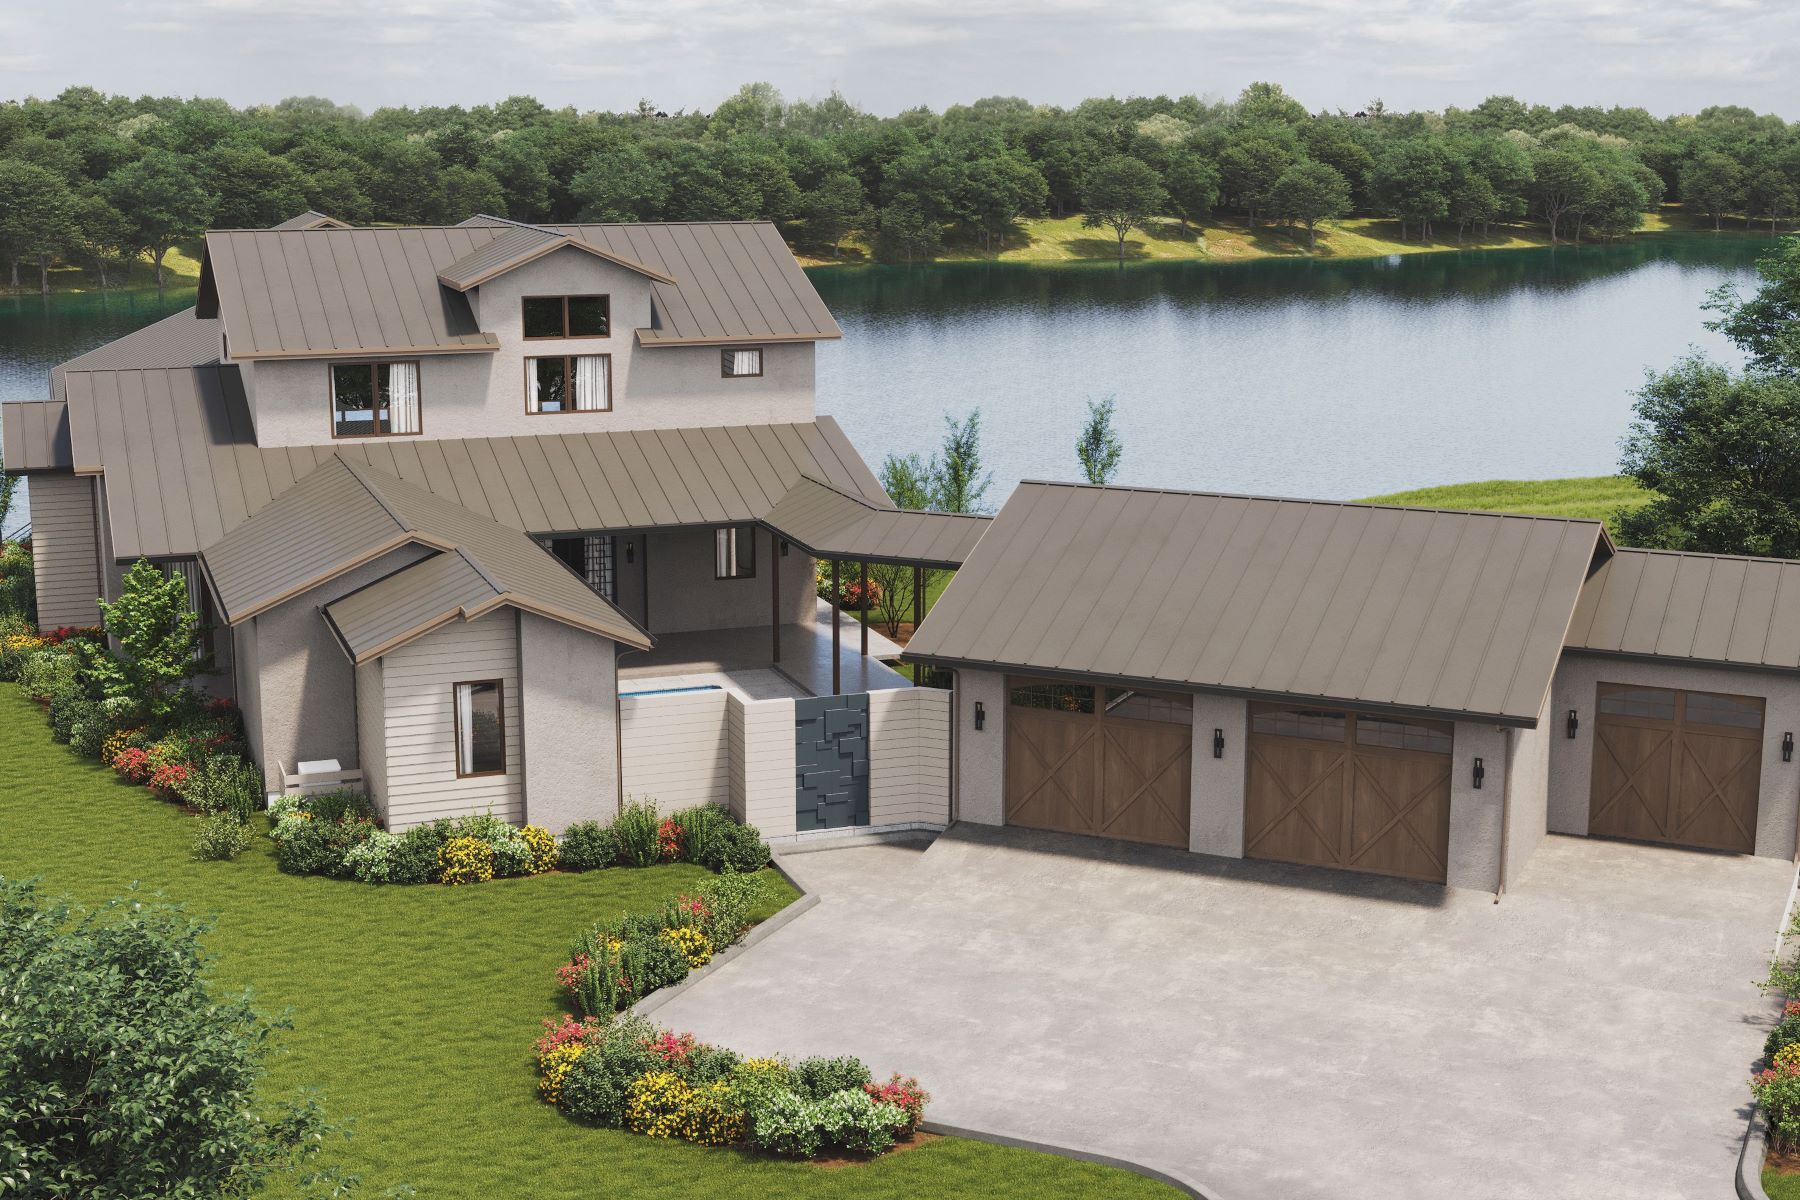 Single Family Homes for Active at New Construction on Lake LBJ 132 Ensenada Lane on Lake LBJ Horseshoe Bay, Texas 78657 United States